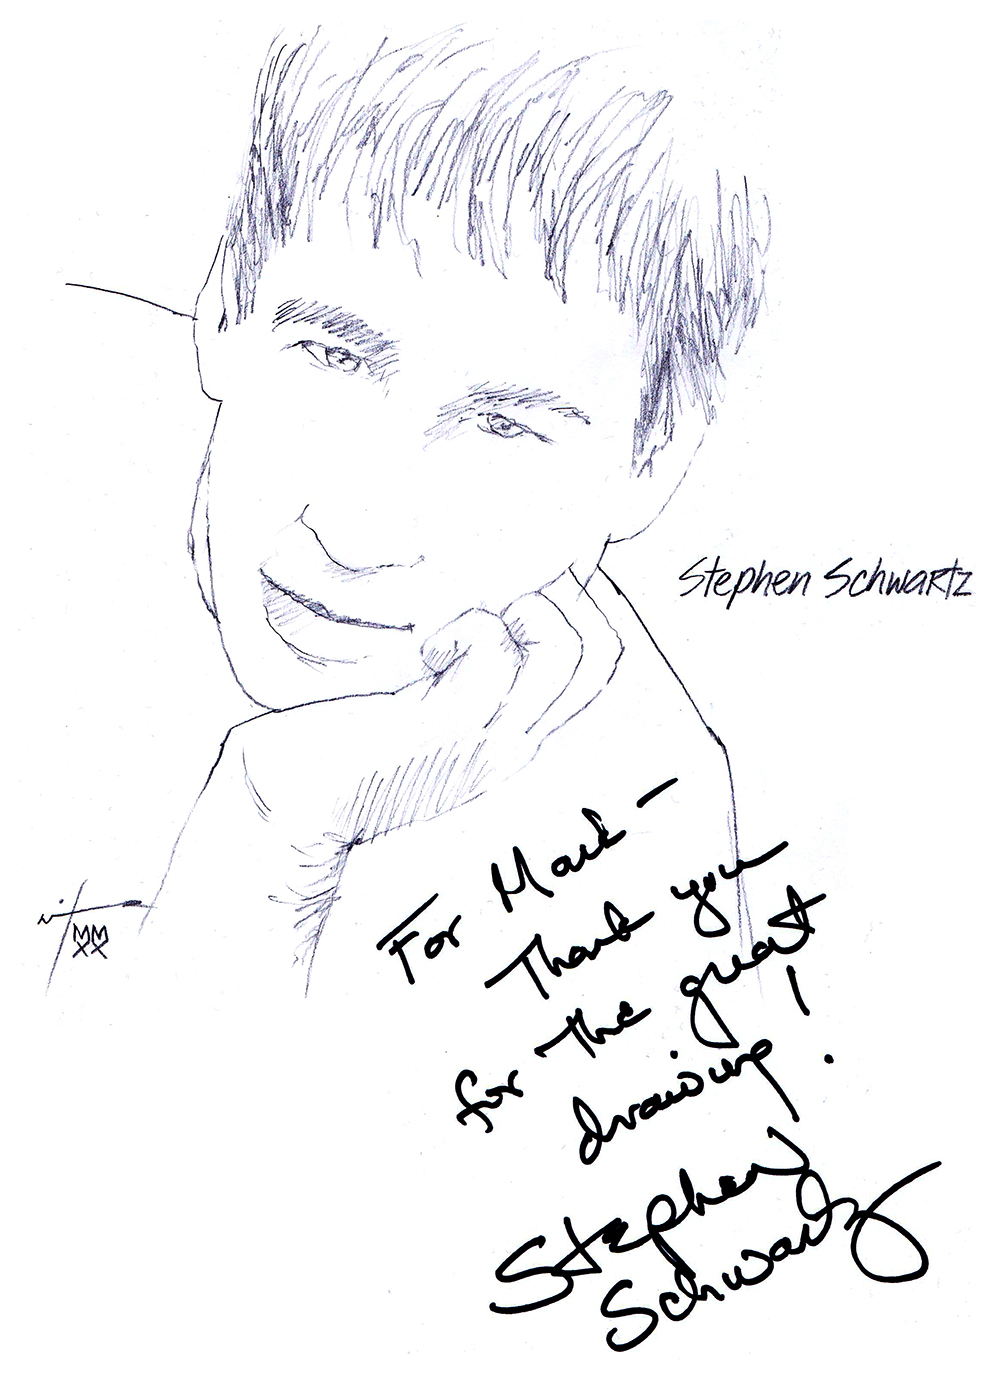 Autographed drawing of composer Stephen Schwartz